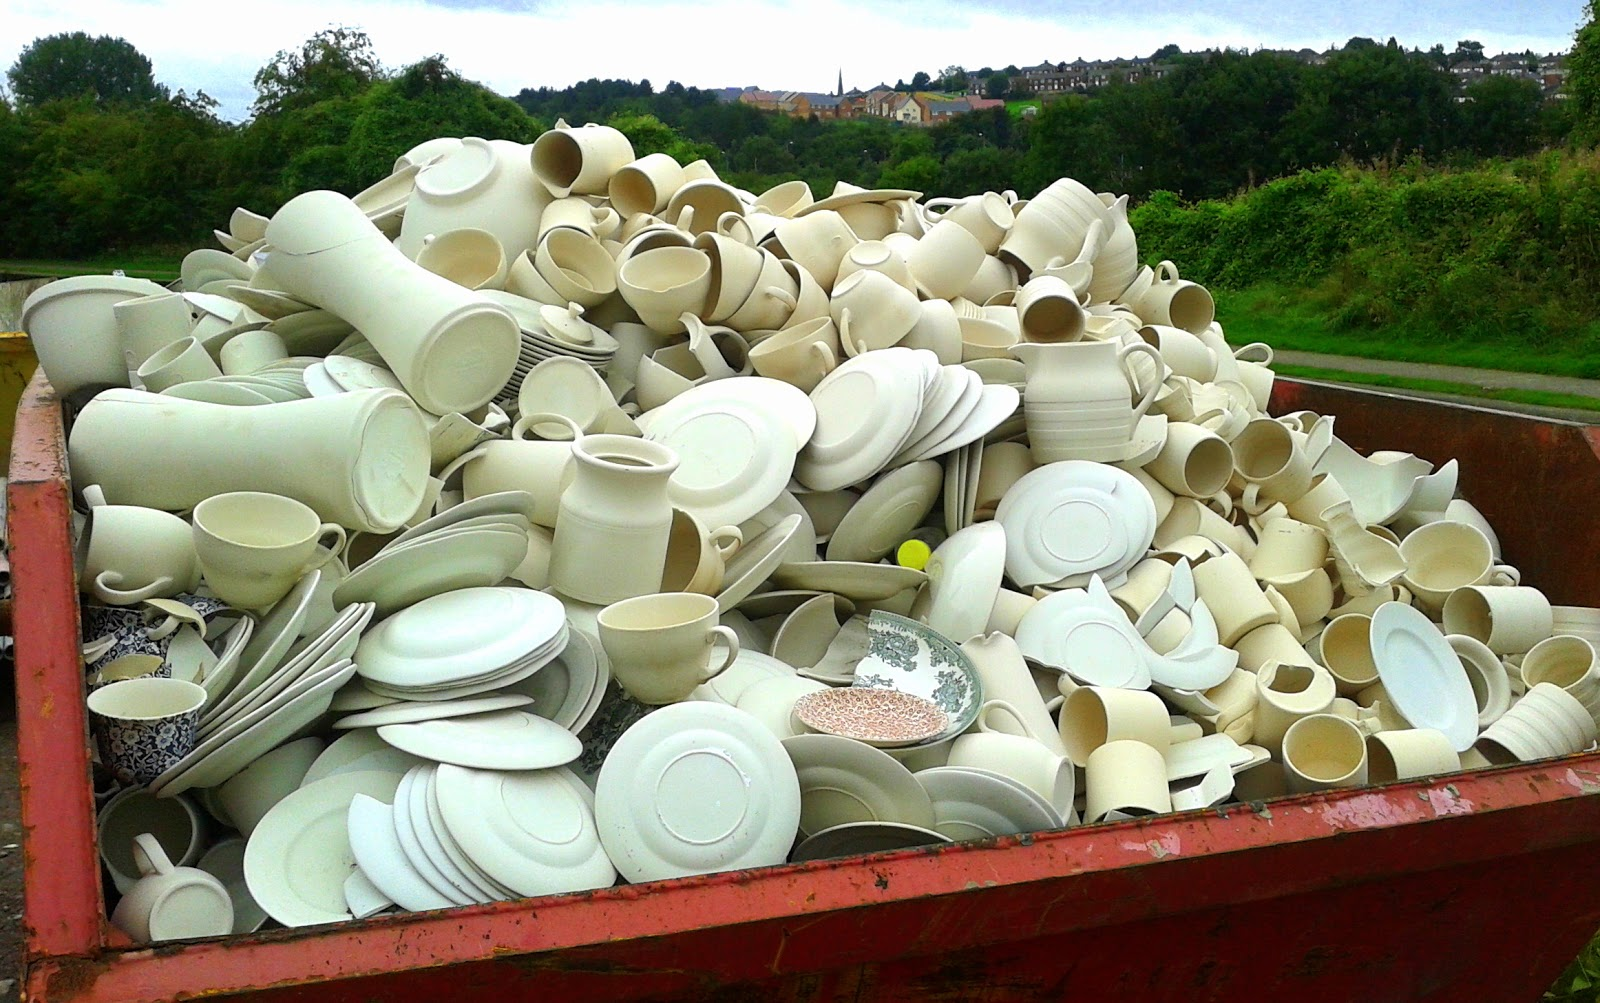 Discarded pottery shards